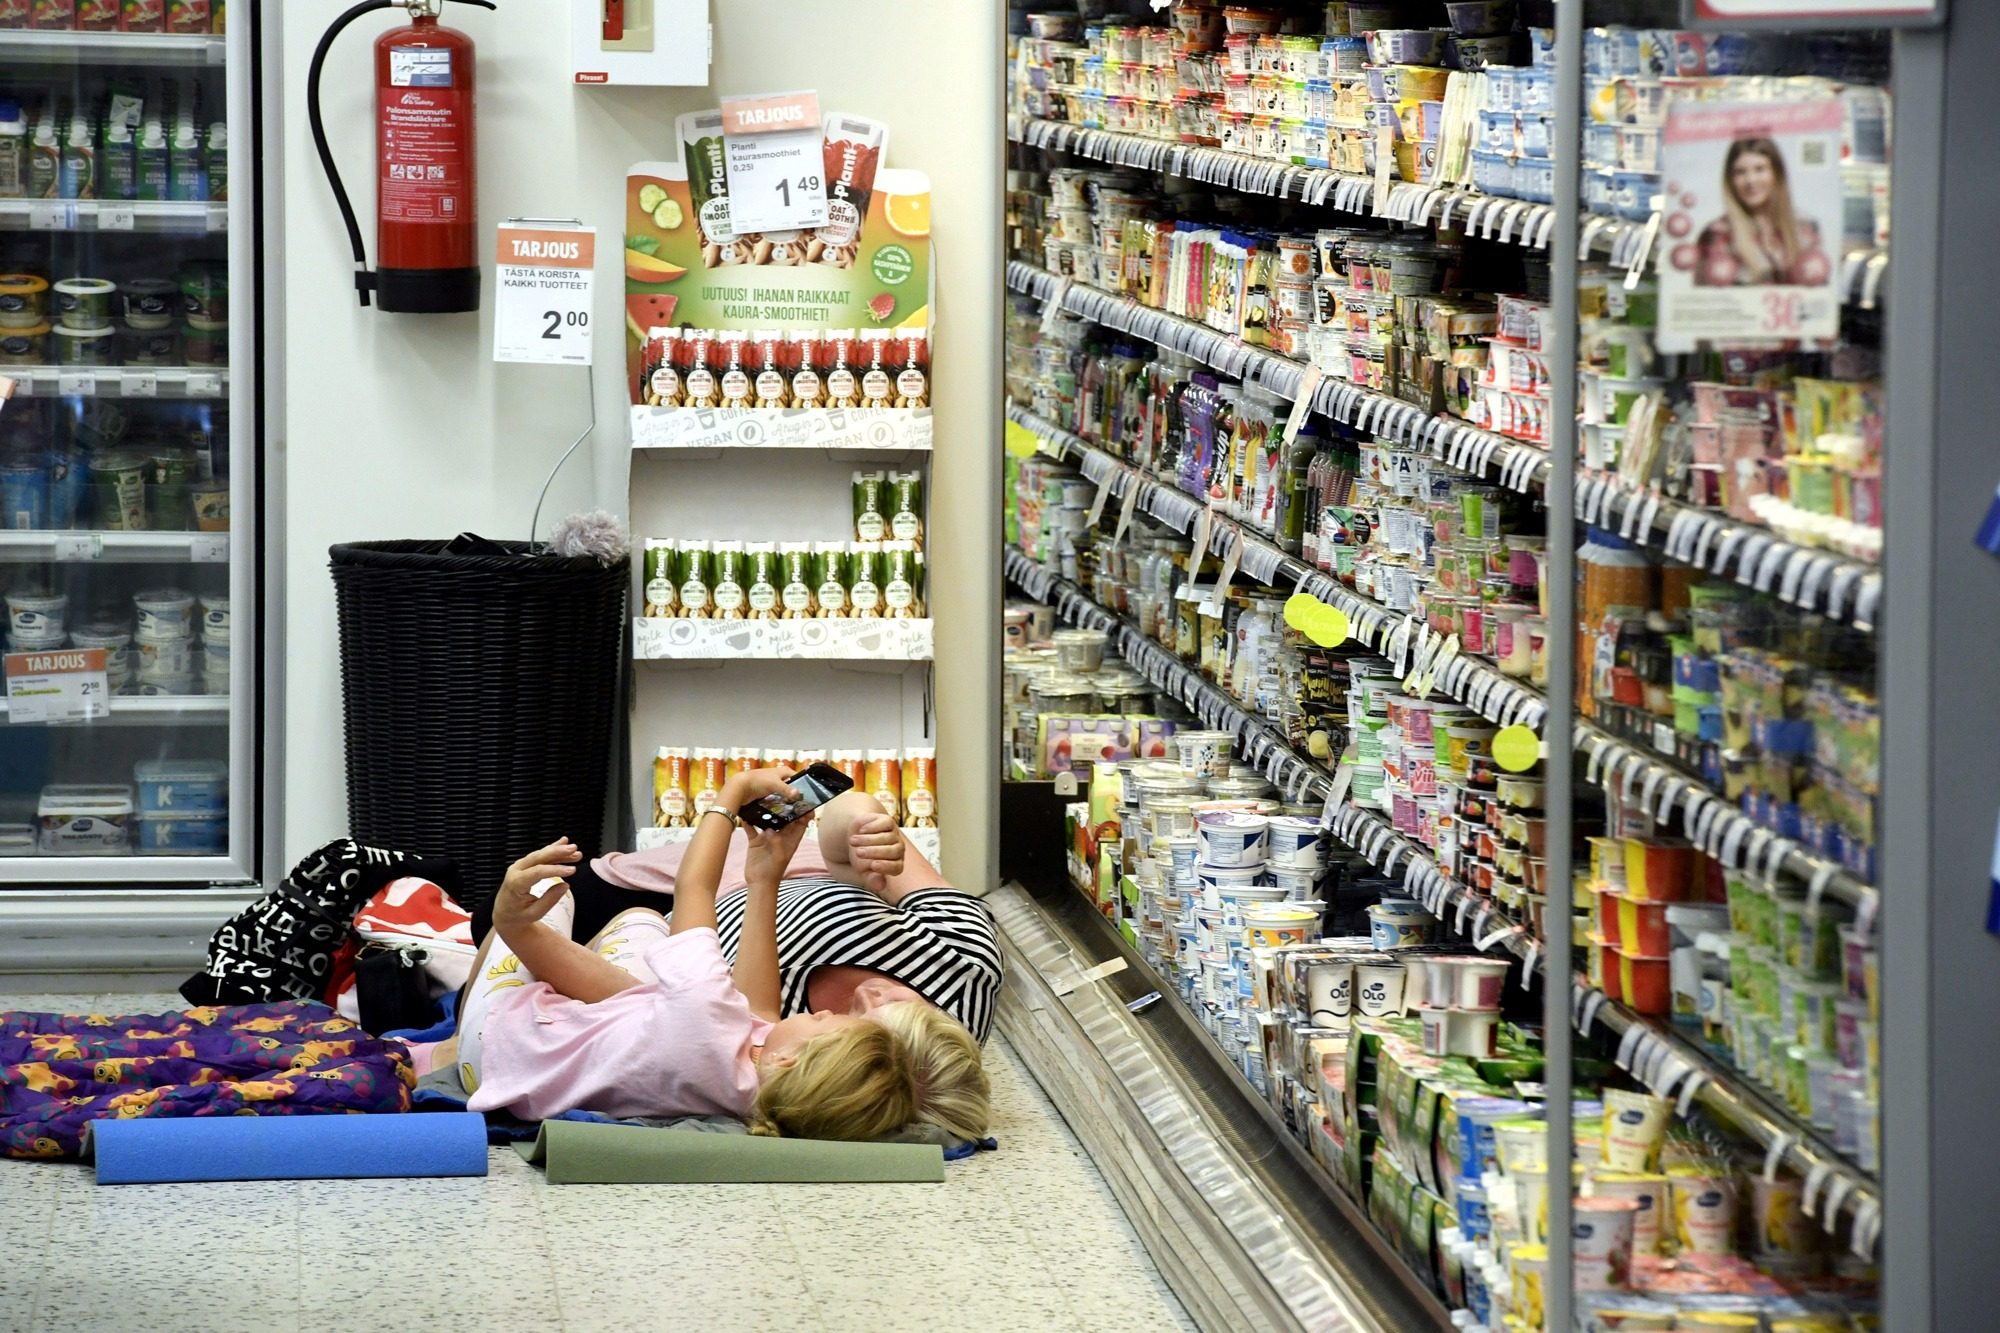 Customers are seen laying on a mattress at local grocery store to cool off.